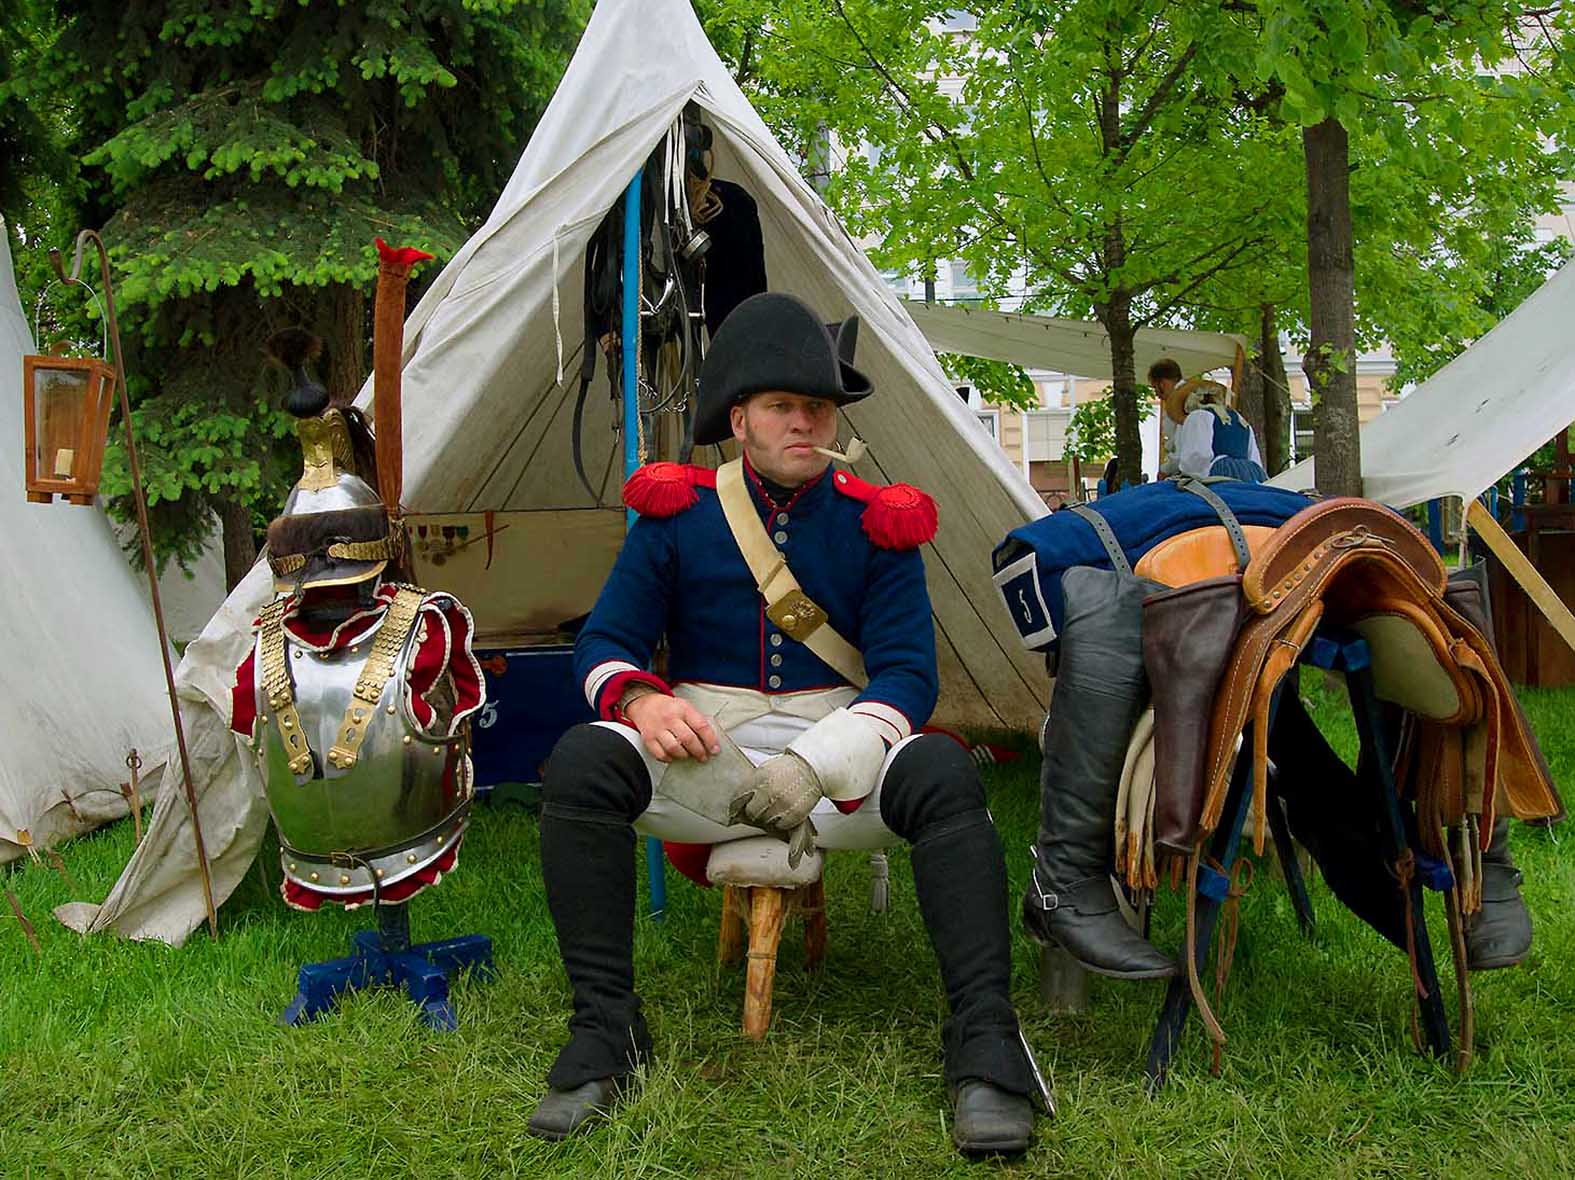 The Borodino Battle, re-enactment, resting in the camp